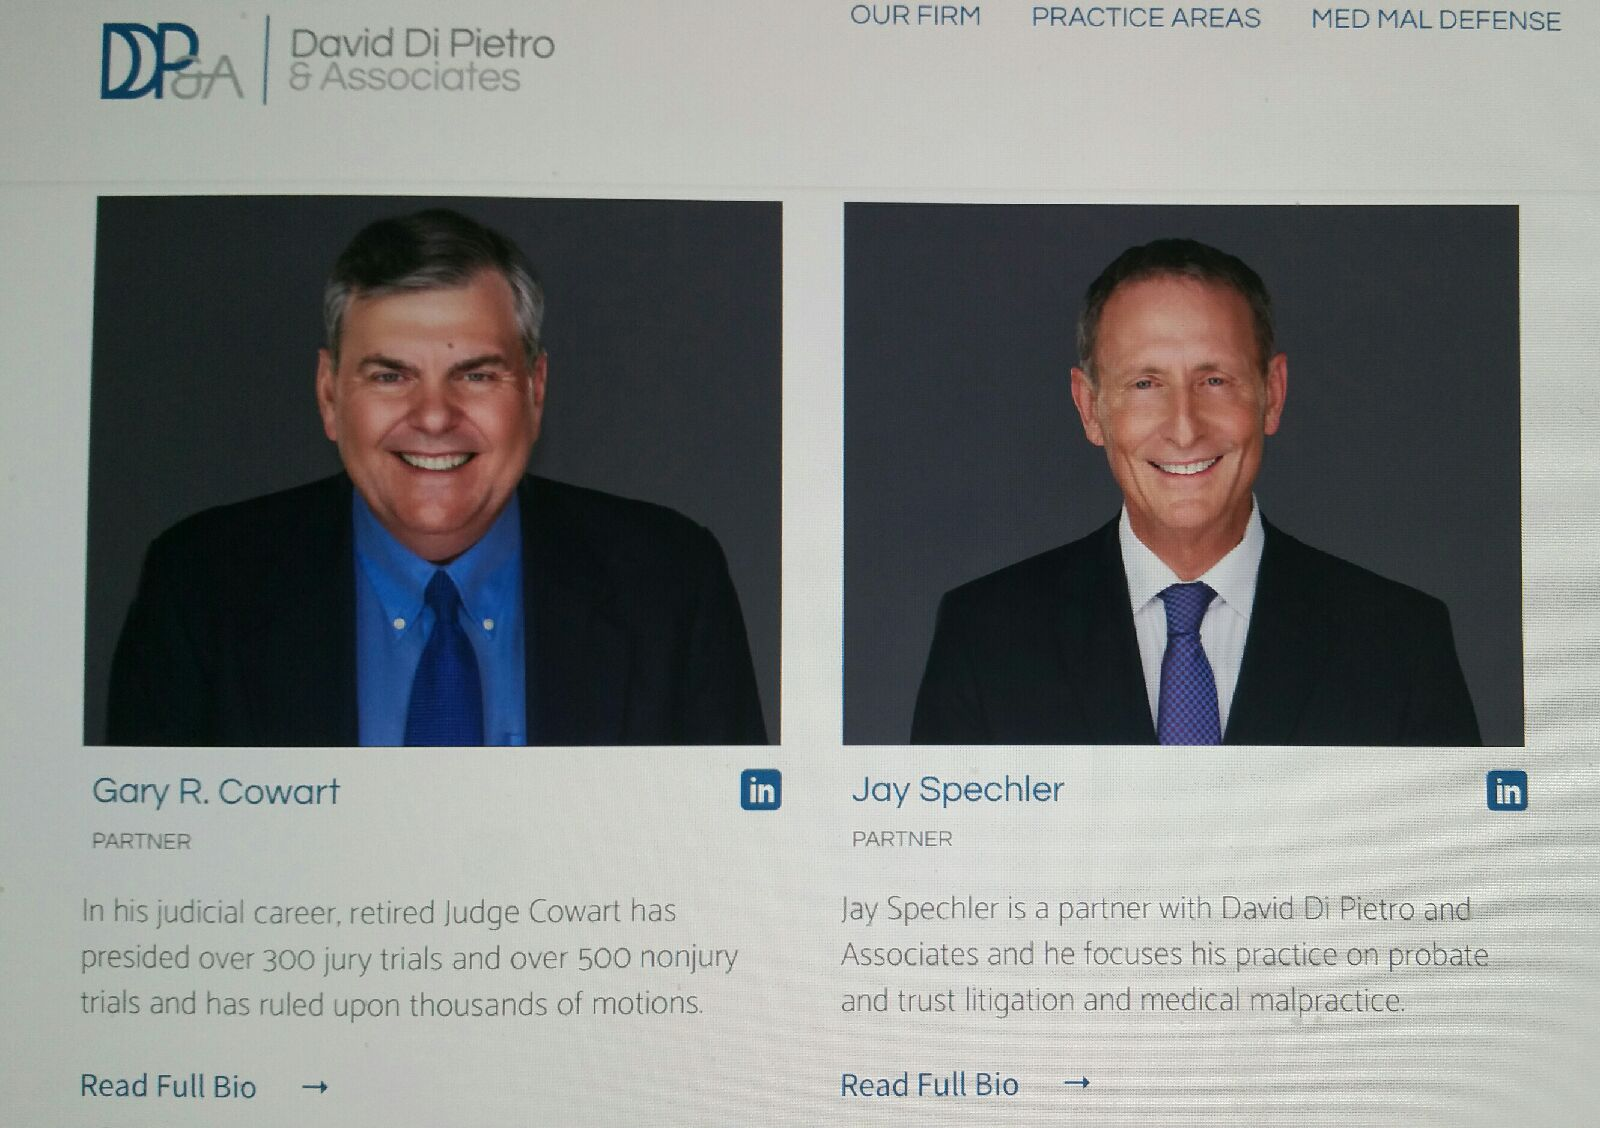 circuit appointments j a a b blog ddpalaw com index php attorneys gary cowart esq